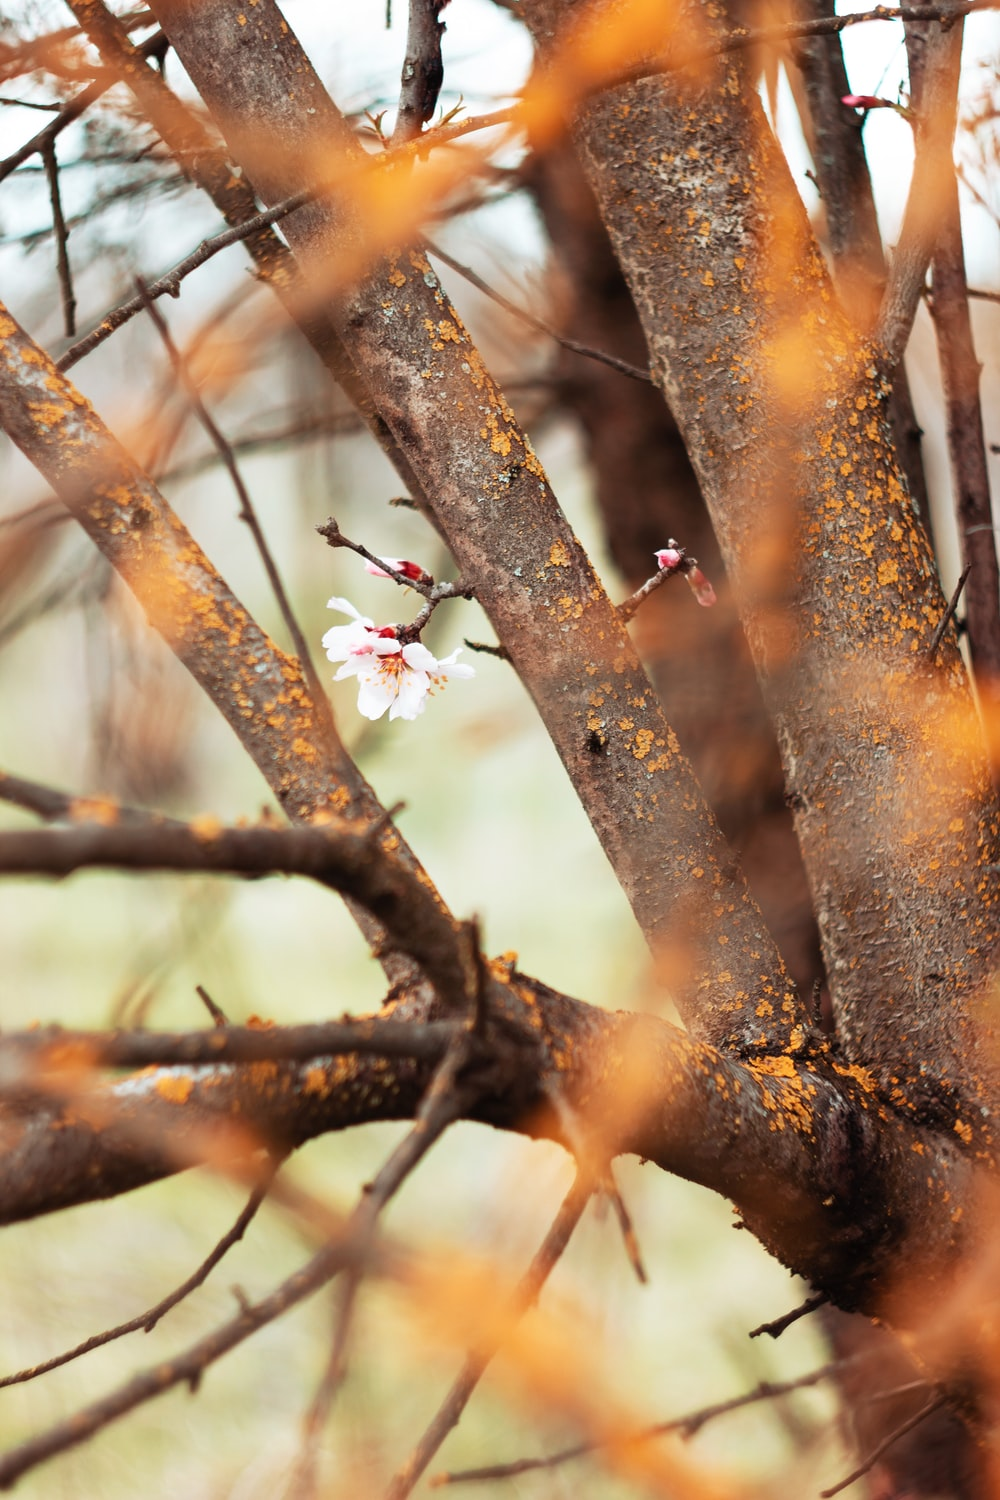 red and white flower buds on brown tree branch